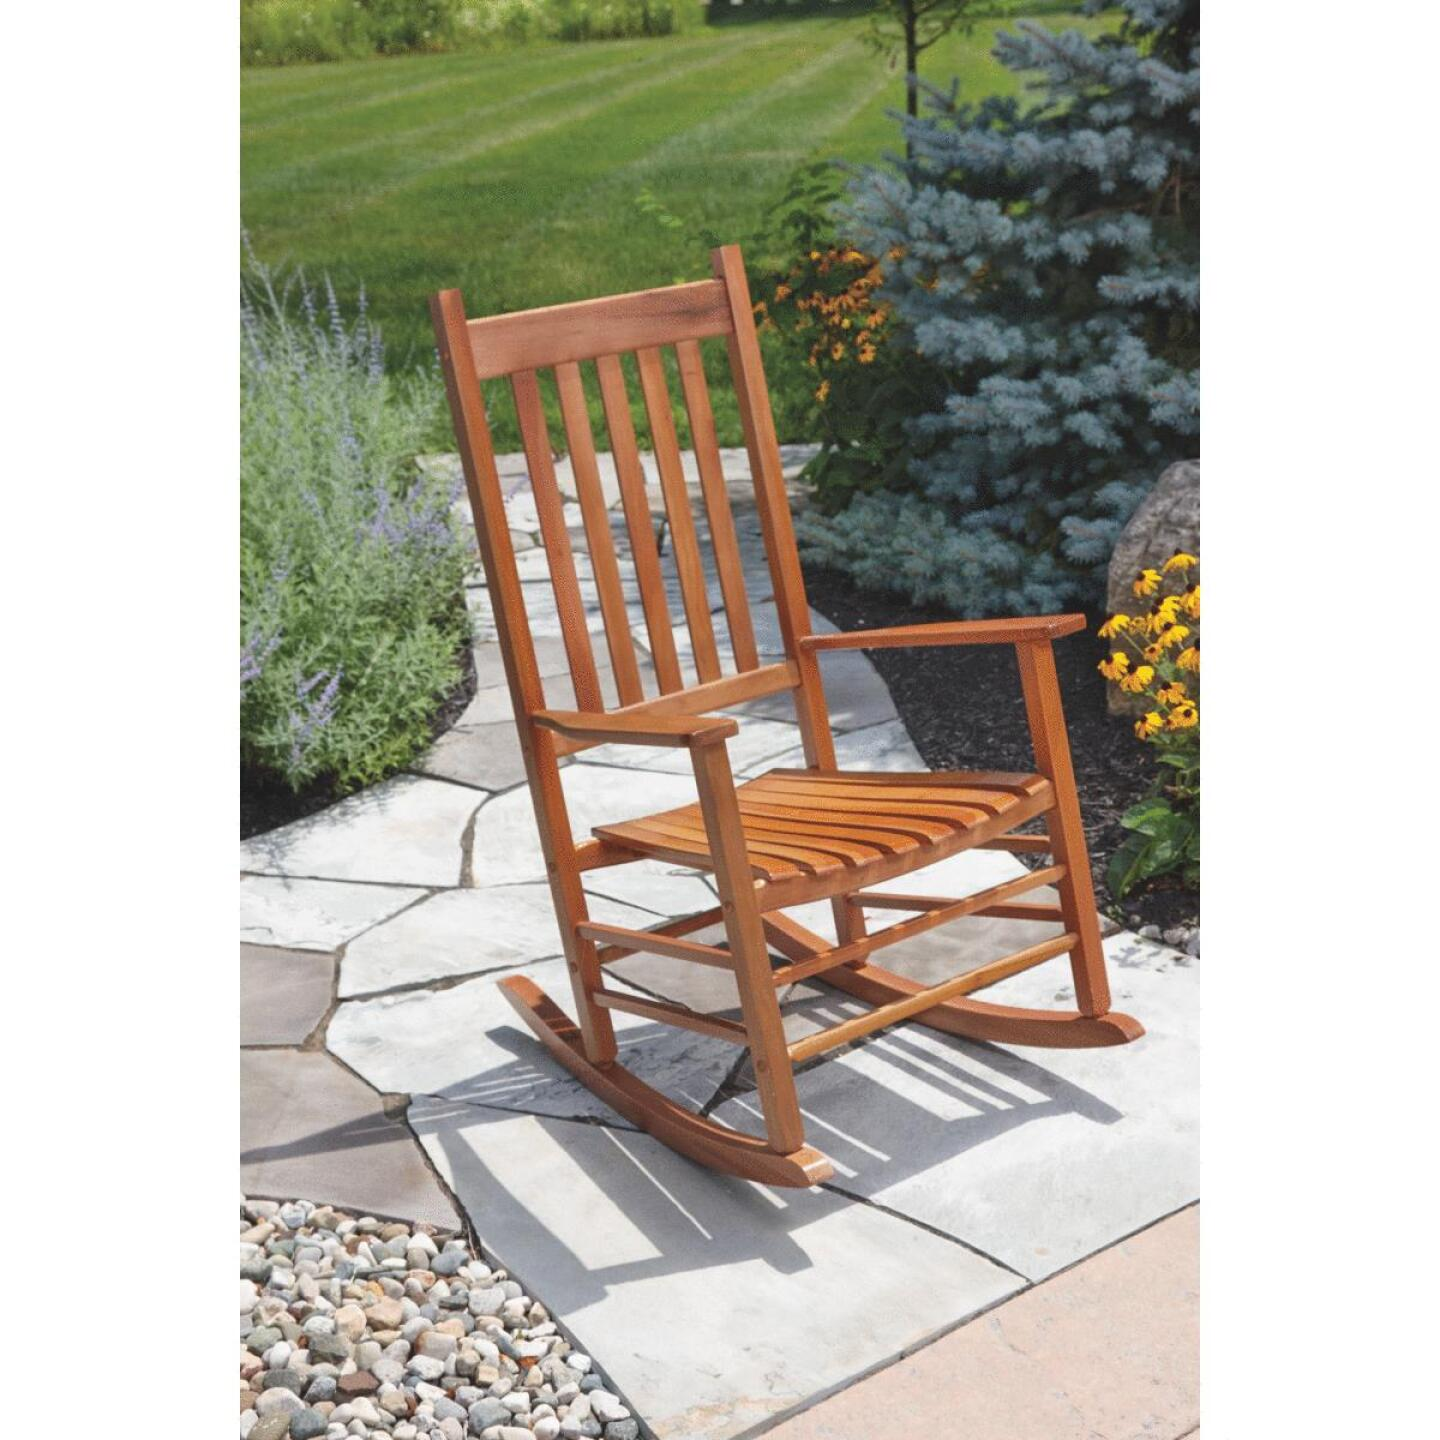 Jackpost Natural Wood Mission Rocking Chair Image 3